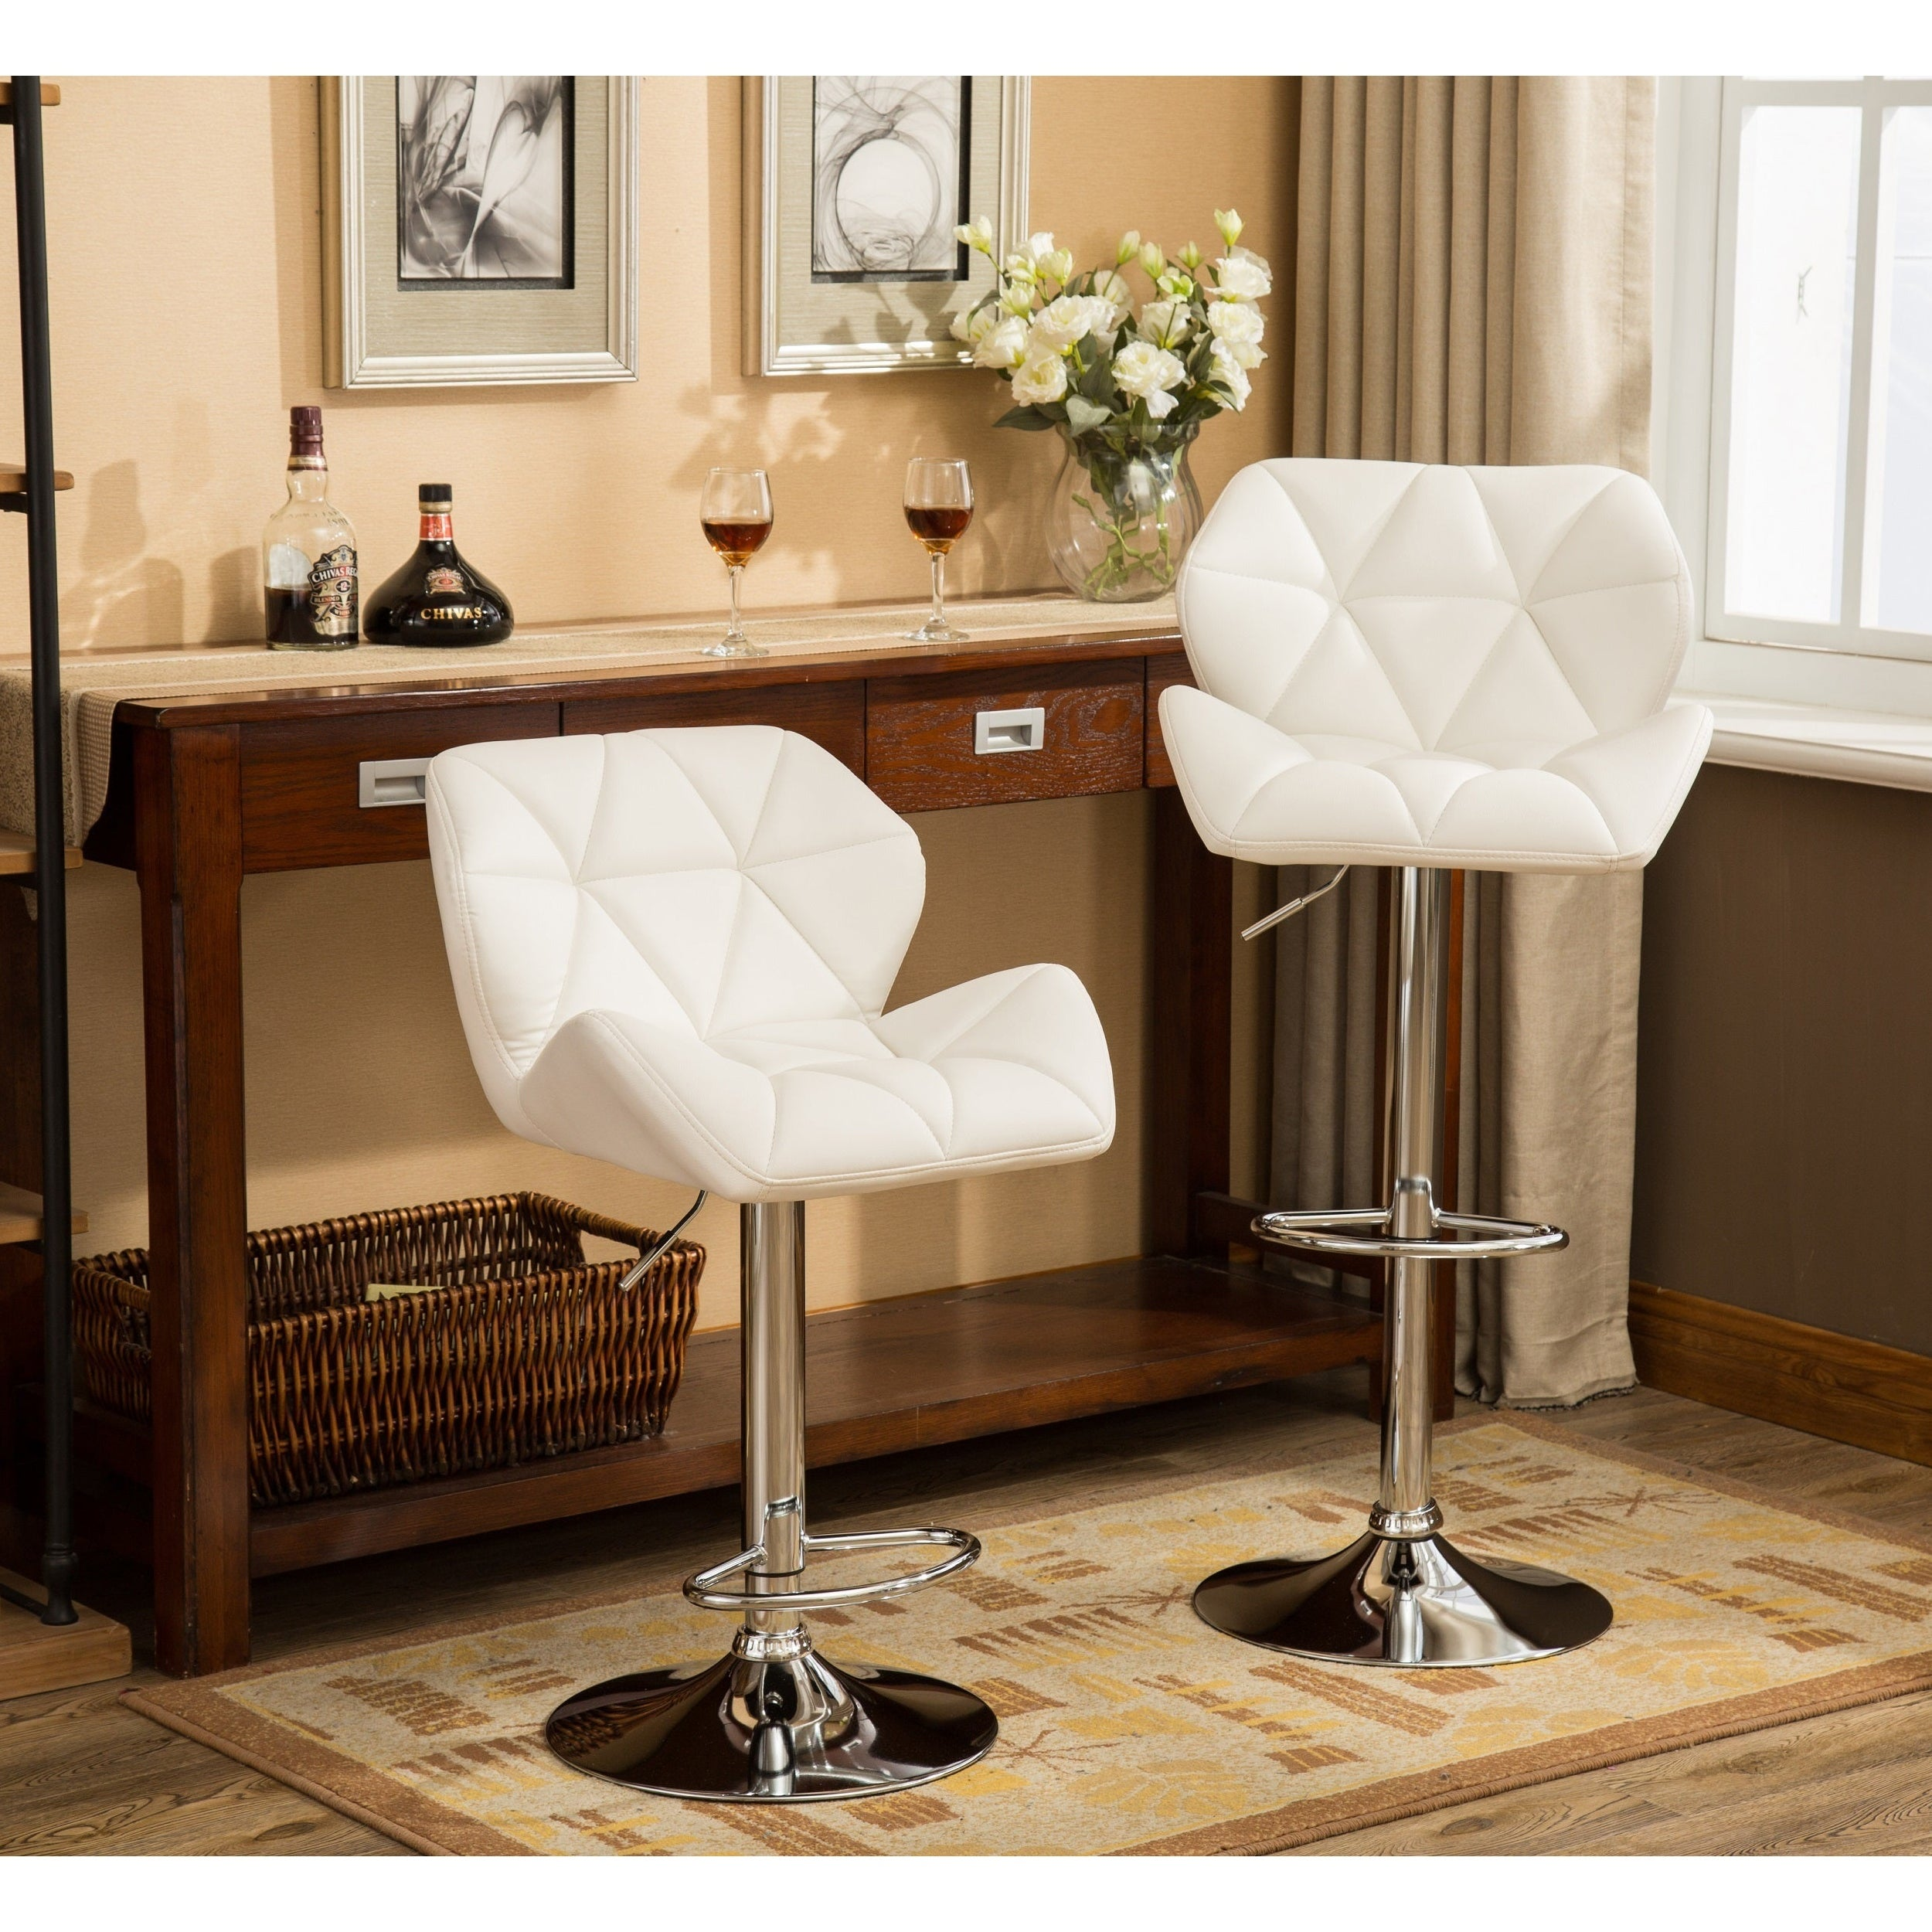 Glasgow Faux Leather Tufted Adjustable height Bar Stools Set of 9